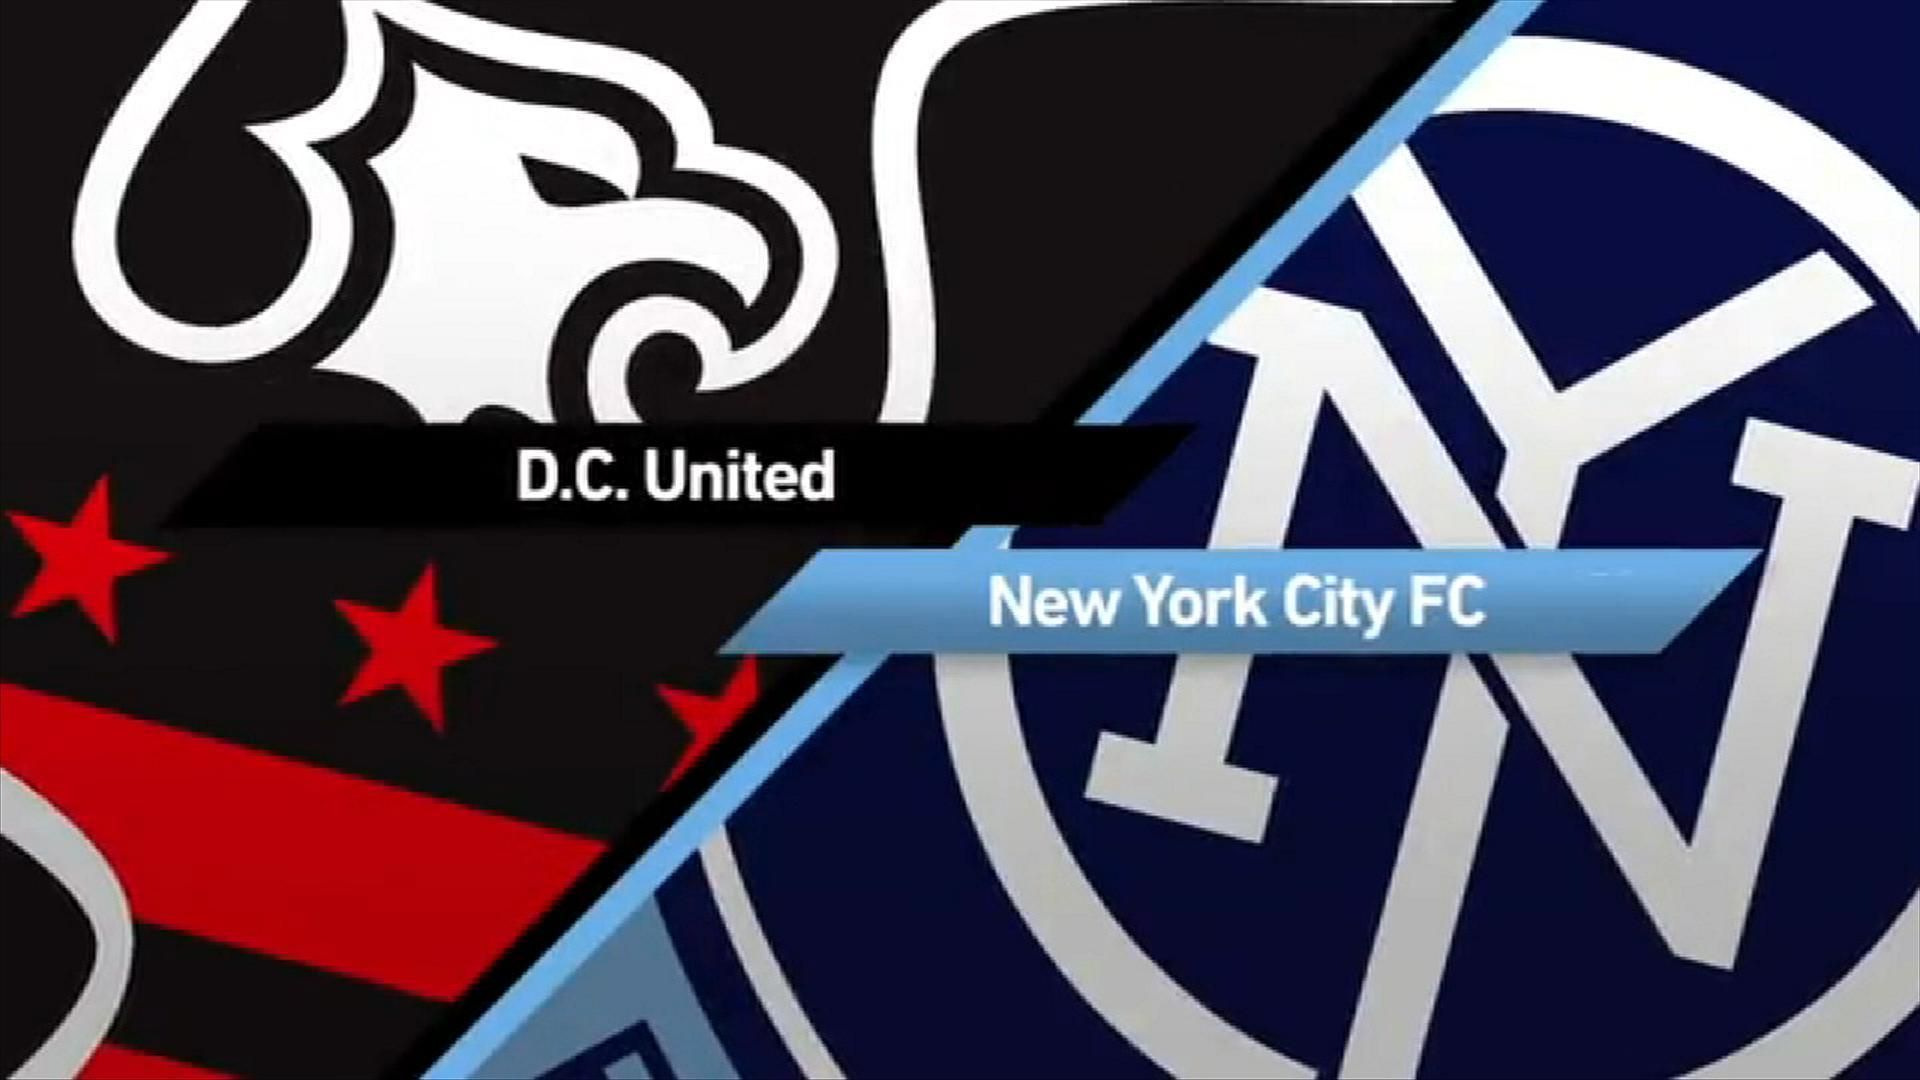 D.C. United 2-1 NYCFC: Hosts avenge blowout - Via MLS